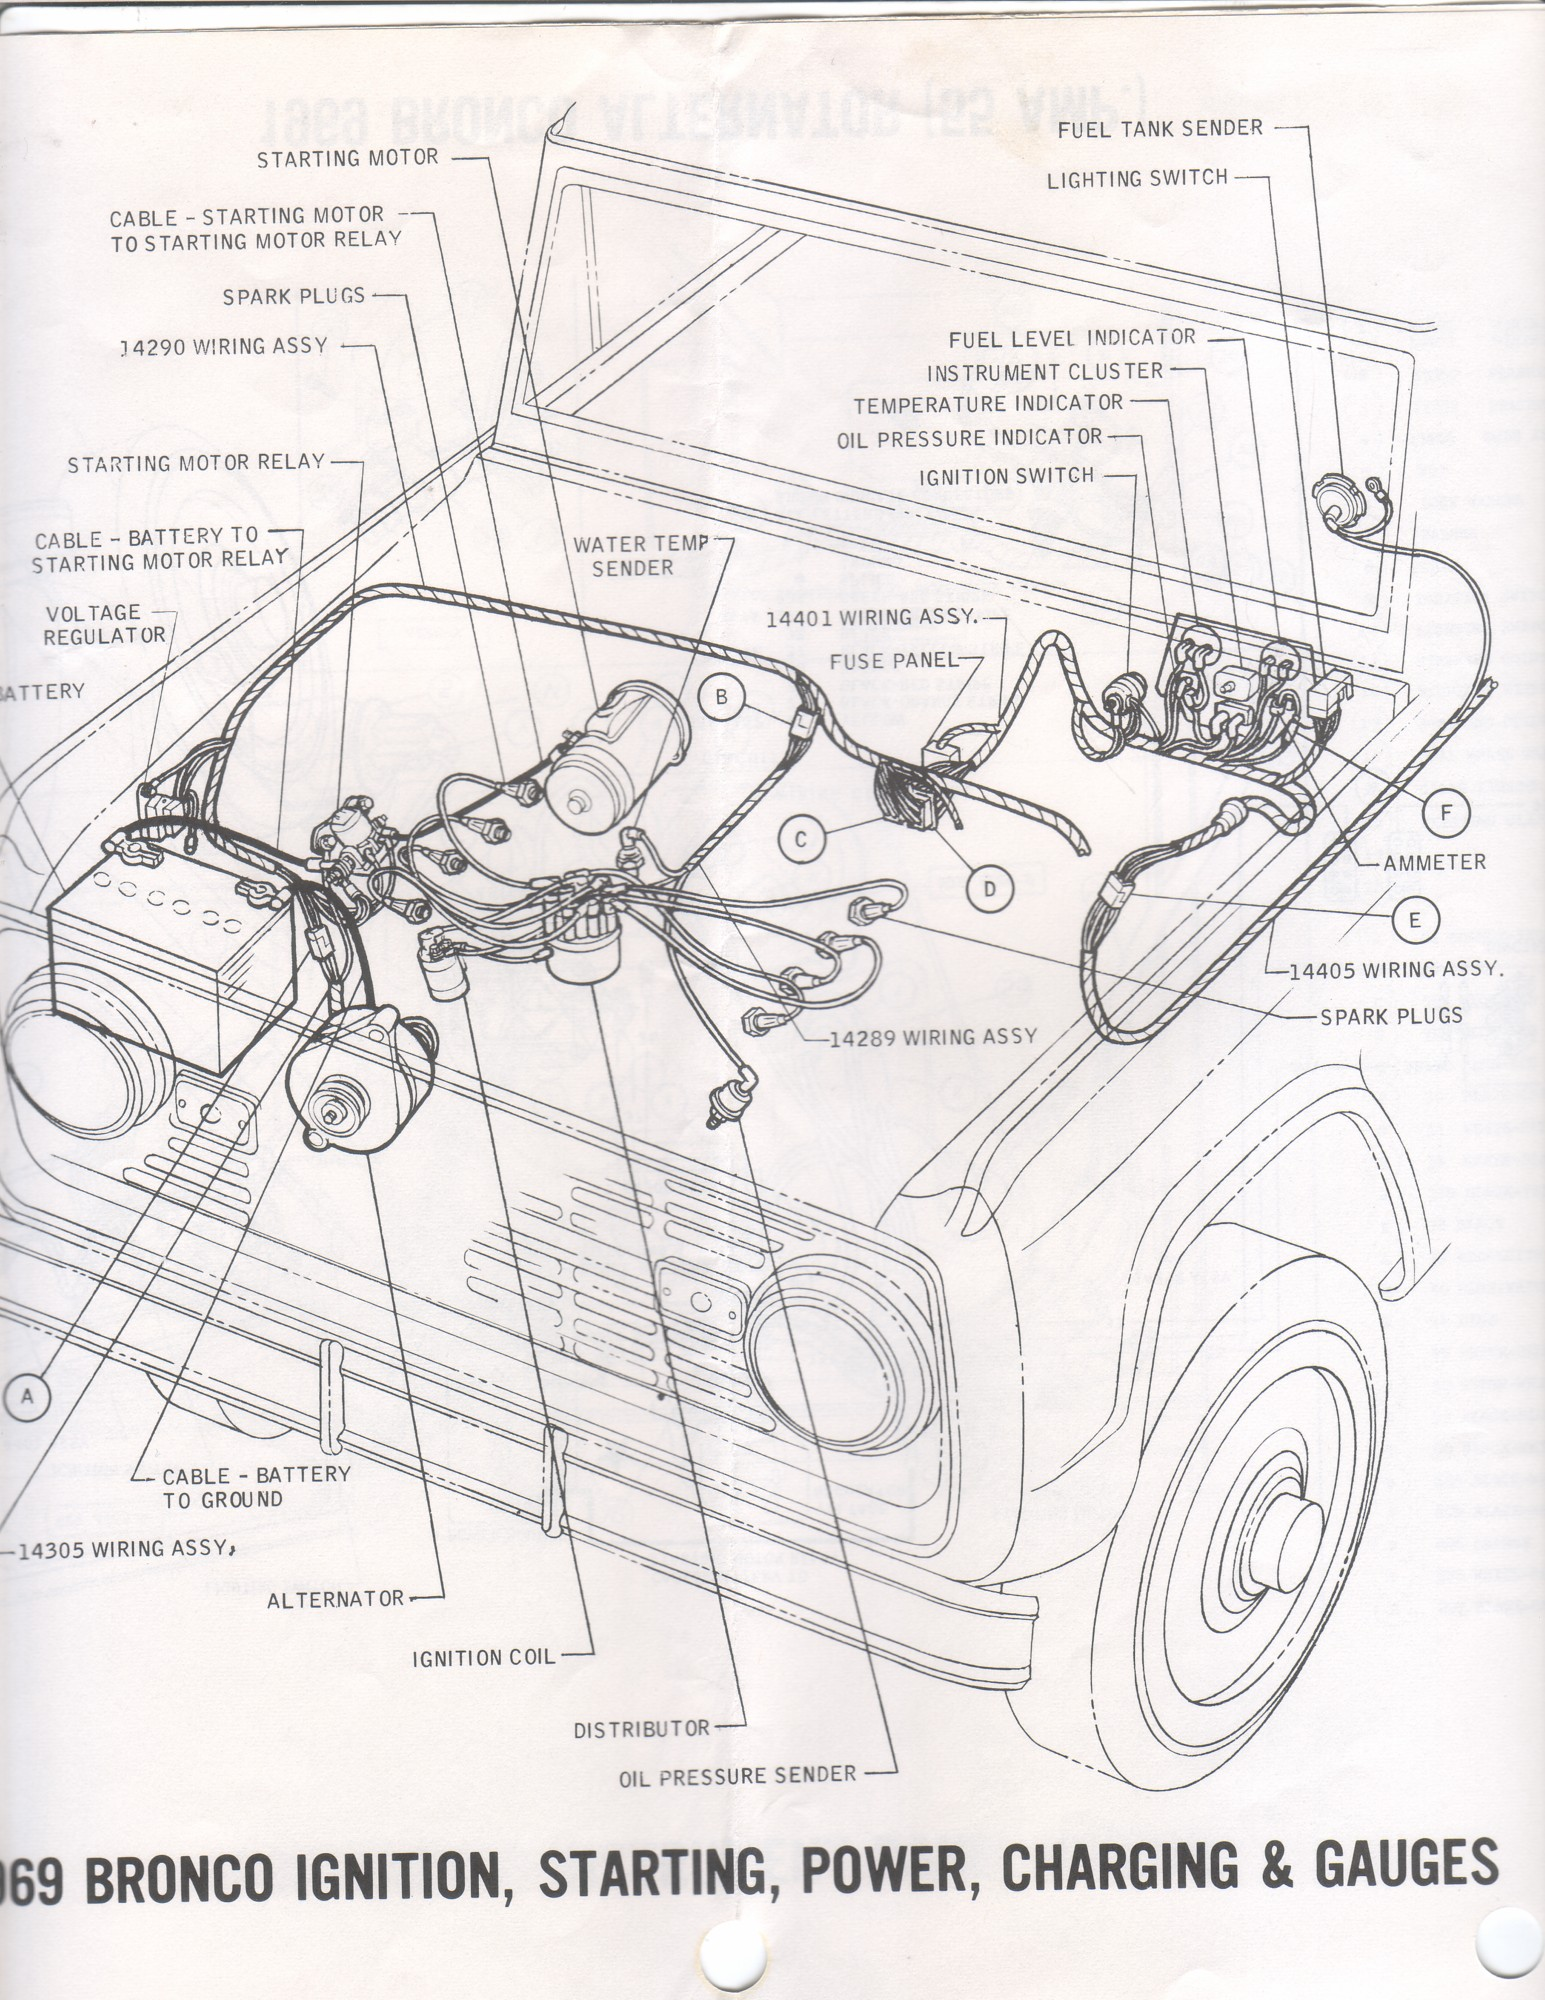 Wiring Diagram For 66 77 Ford Bronco. Ford. Auto Wiring